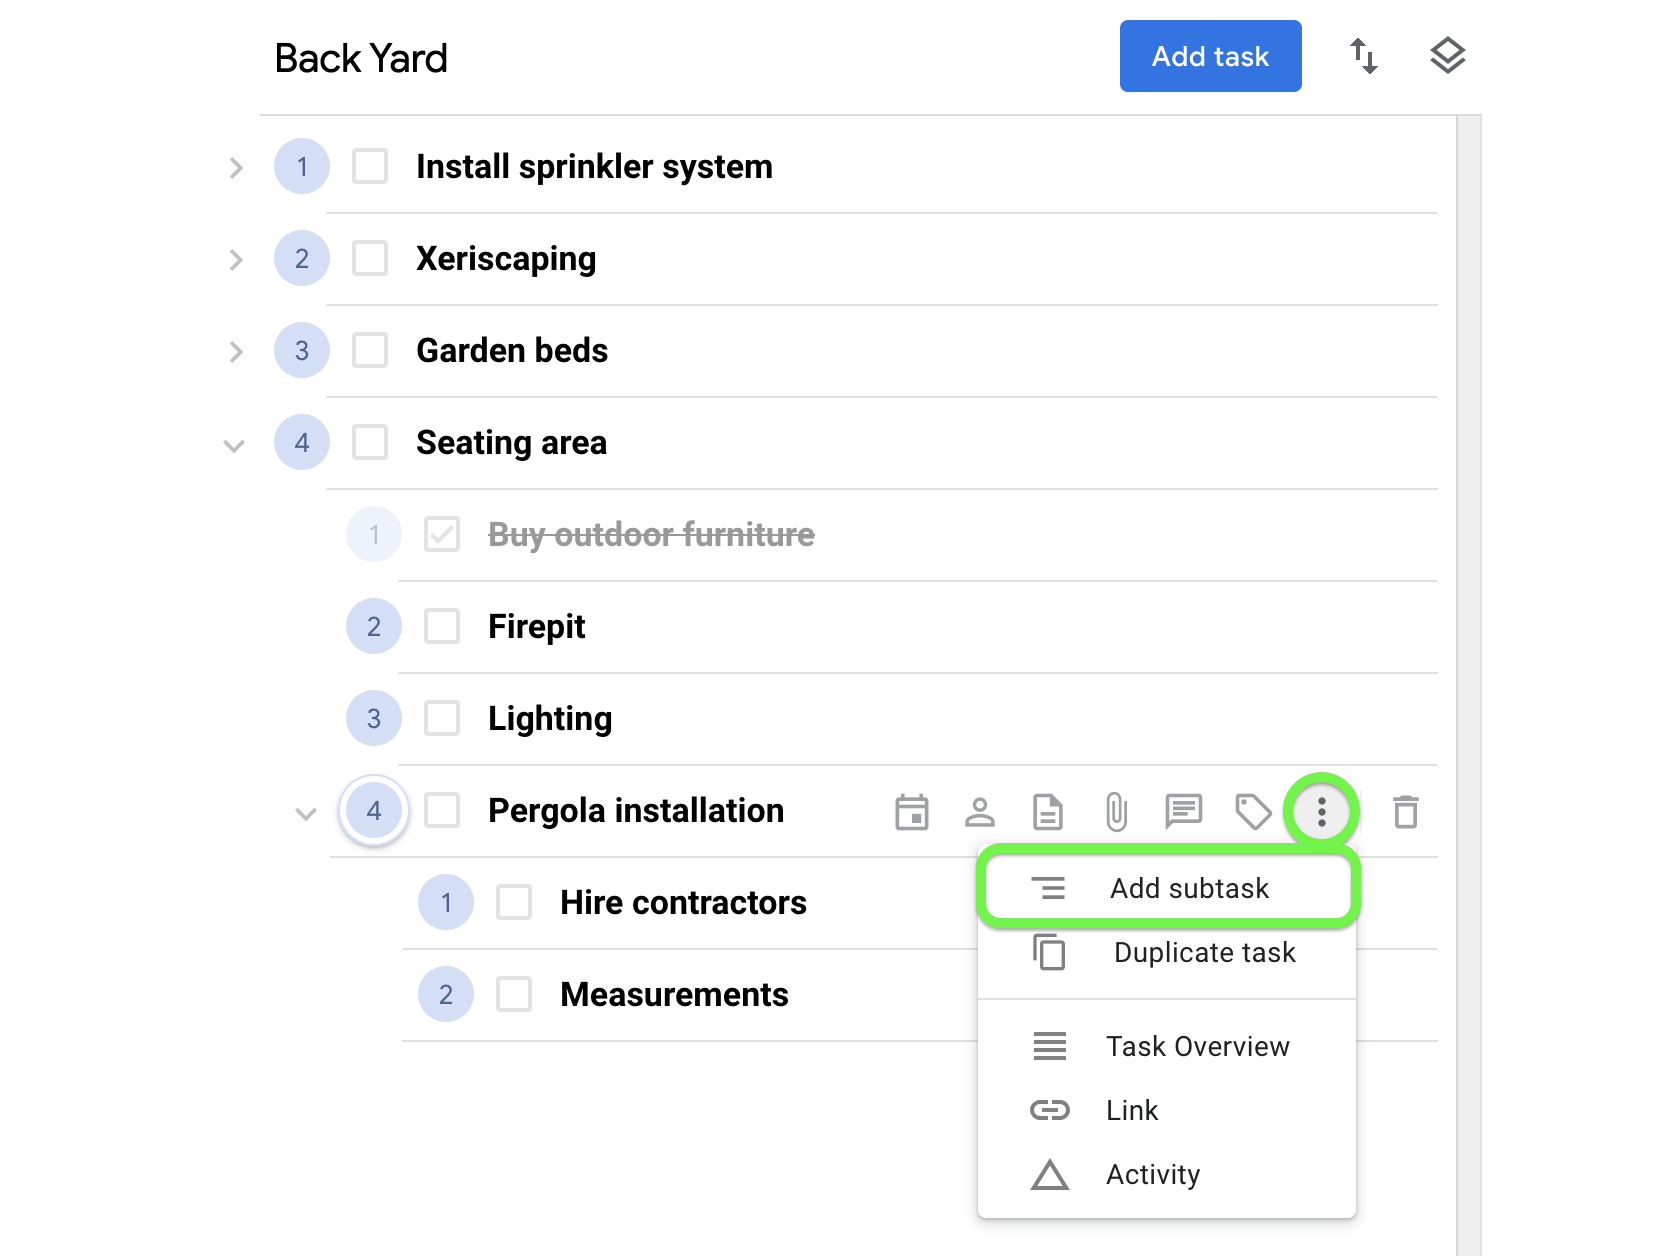 Create a subtask from the task menu.